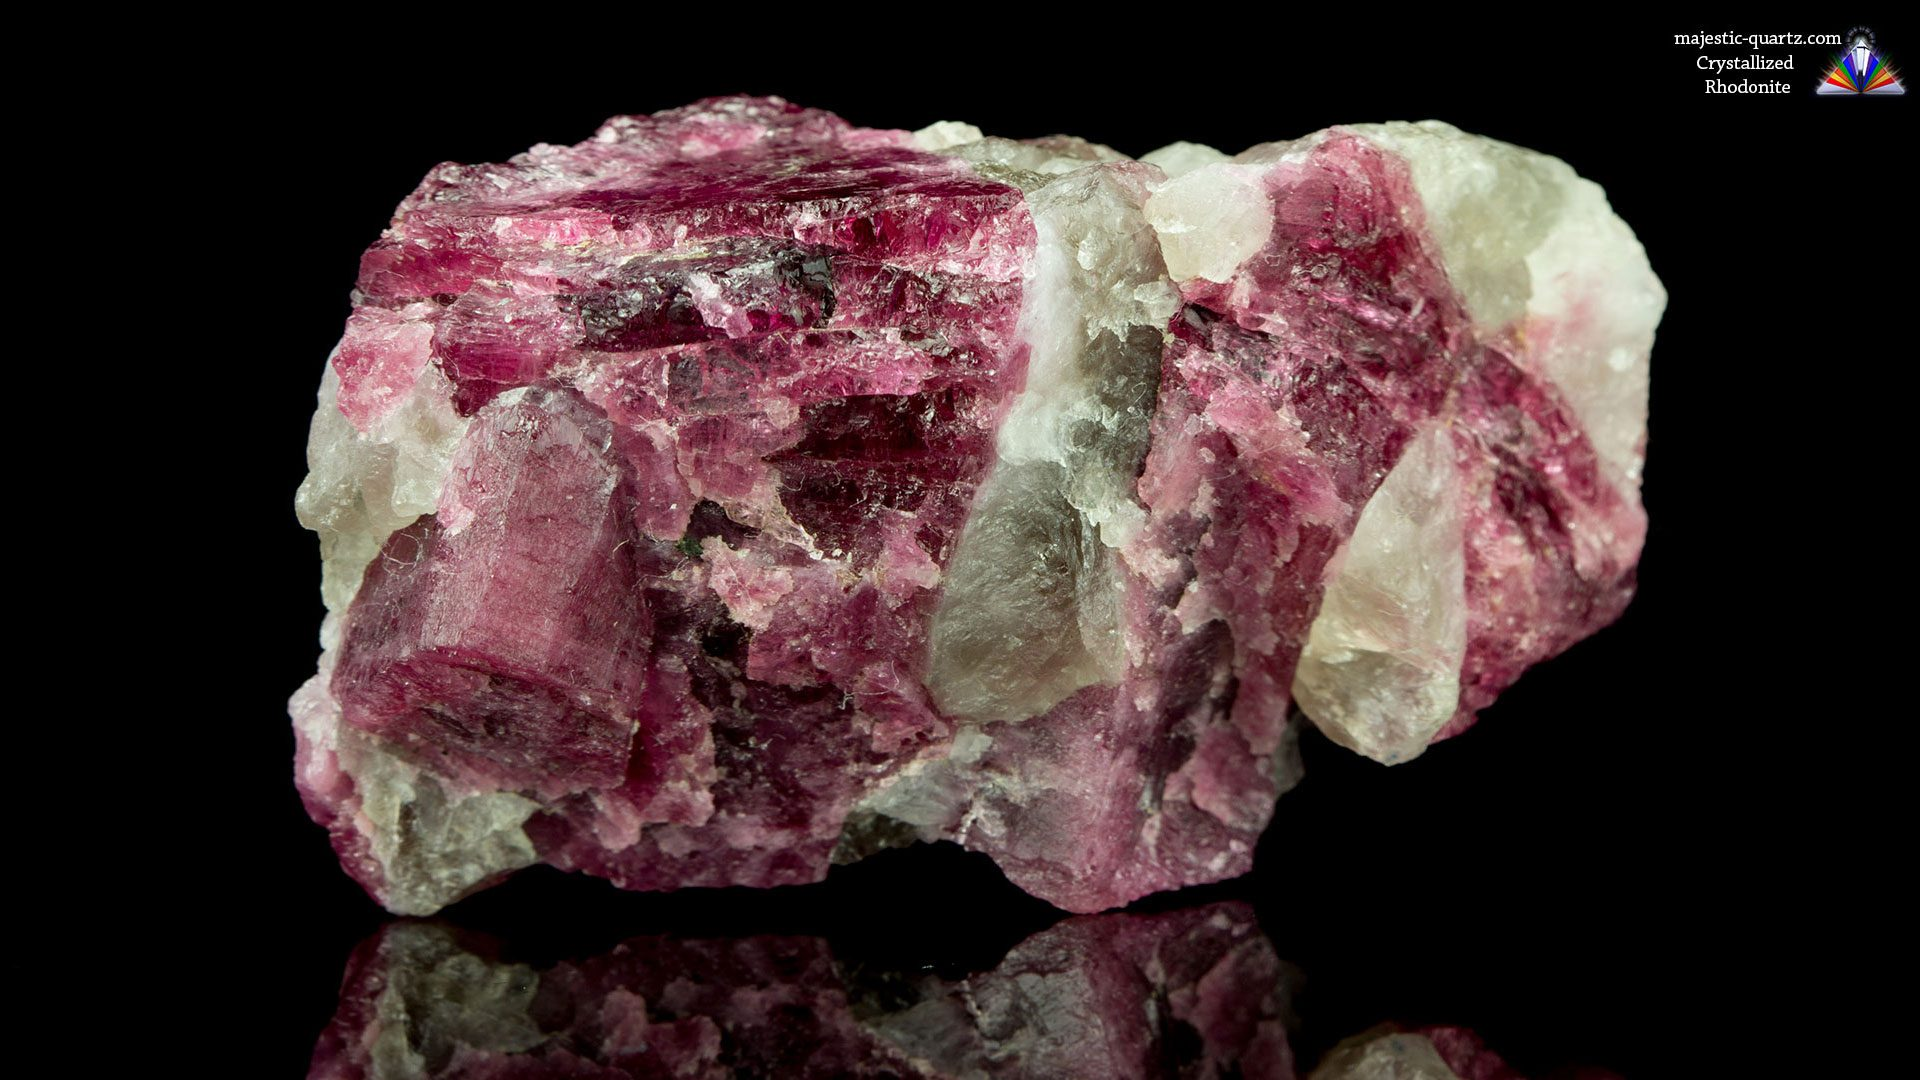 Rhodonite Properties and Meaning - Photograph by Anthony Bradford